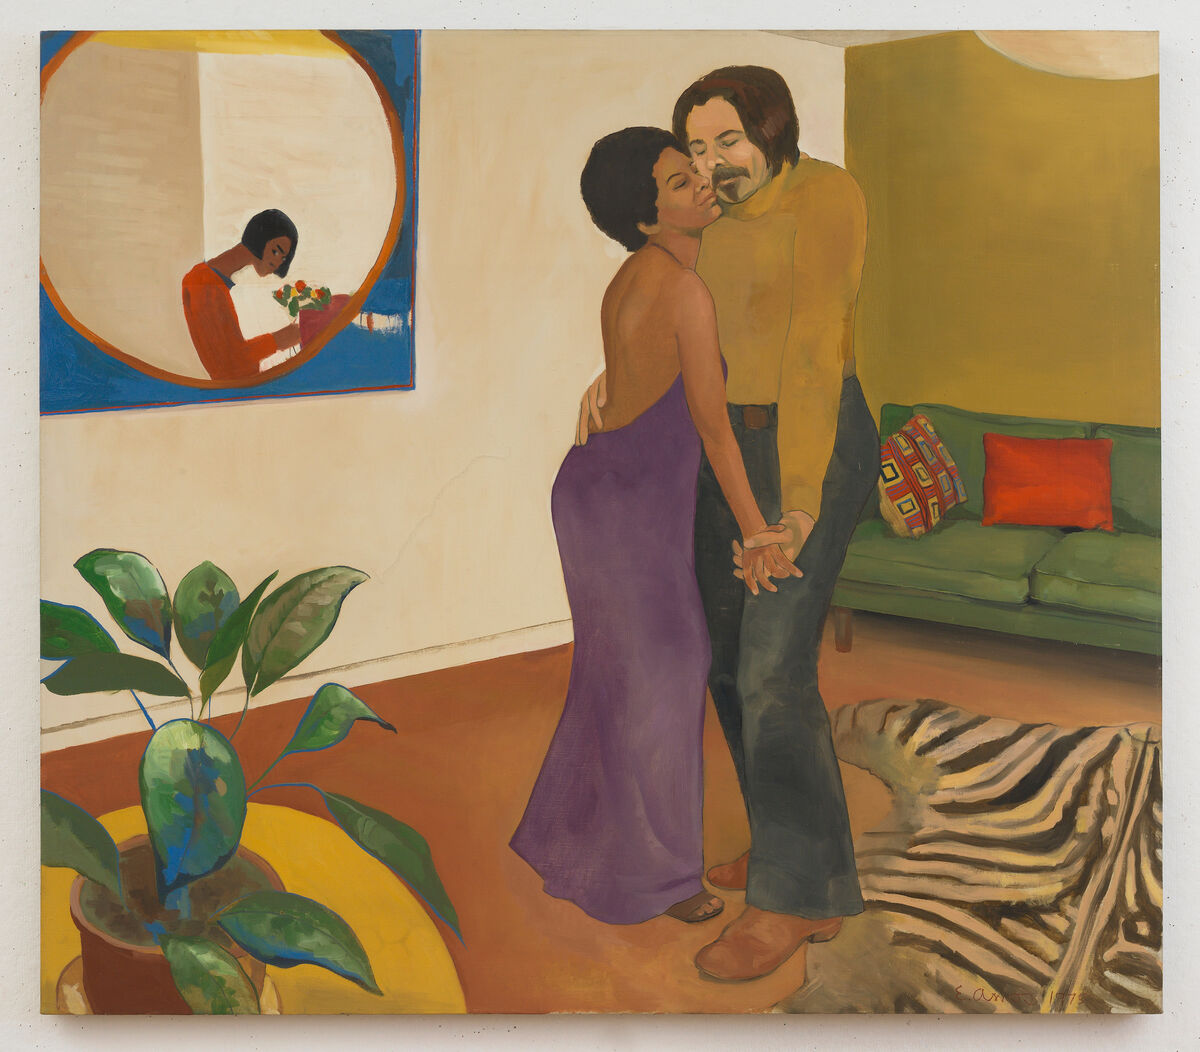 Emma Amos, Sandy and Her Husband, 1973. Courtesy of the artist and Ryan Lee Gallery. Courtesy of Brooklyn Museum.